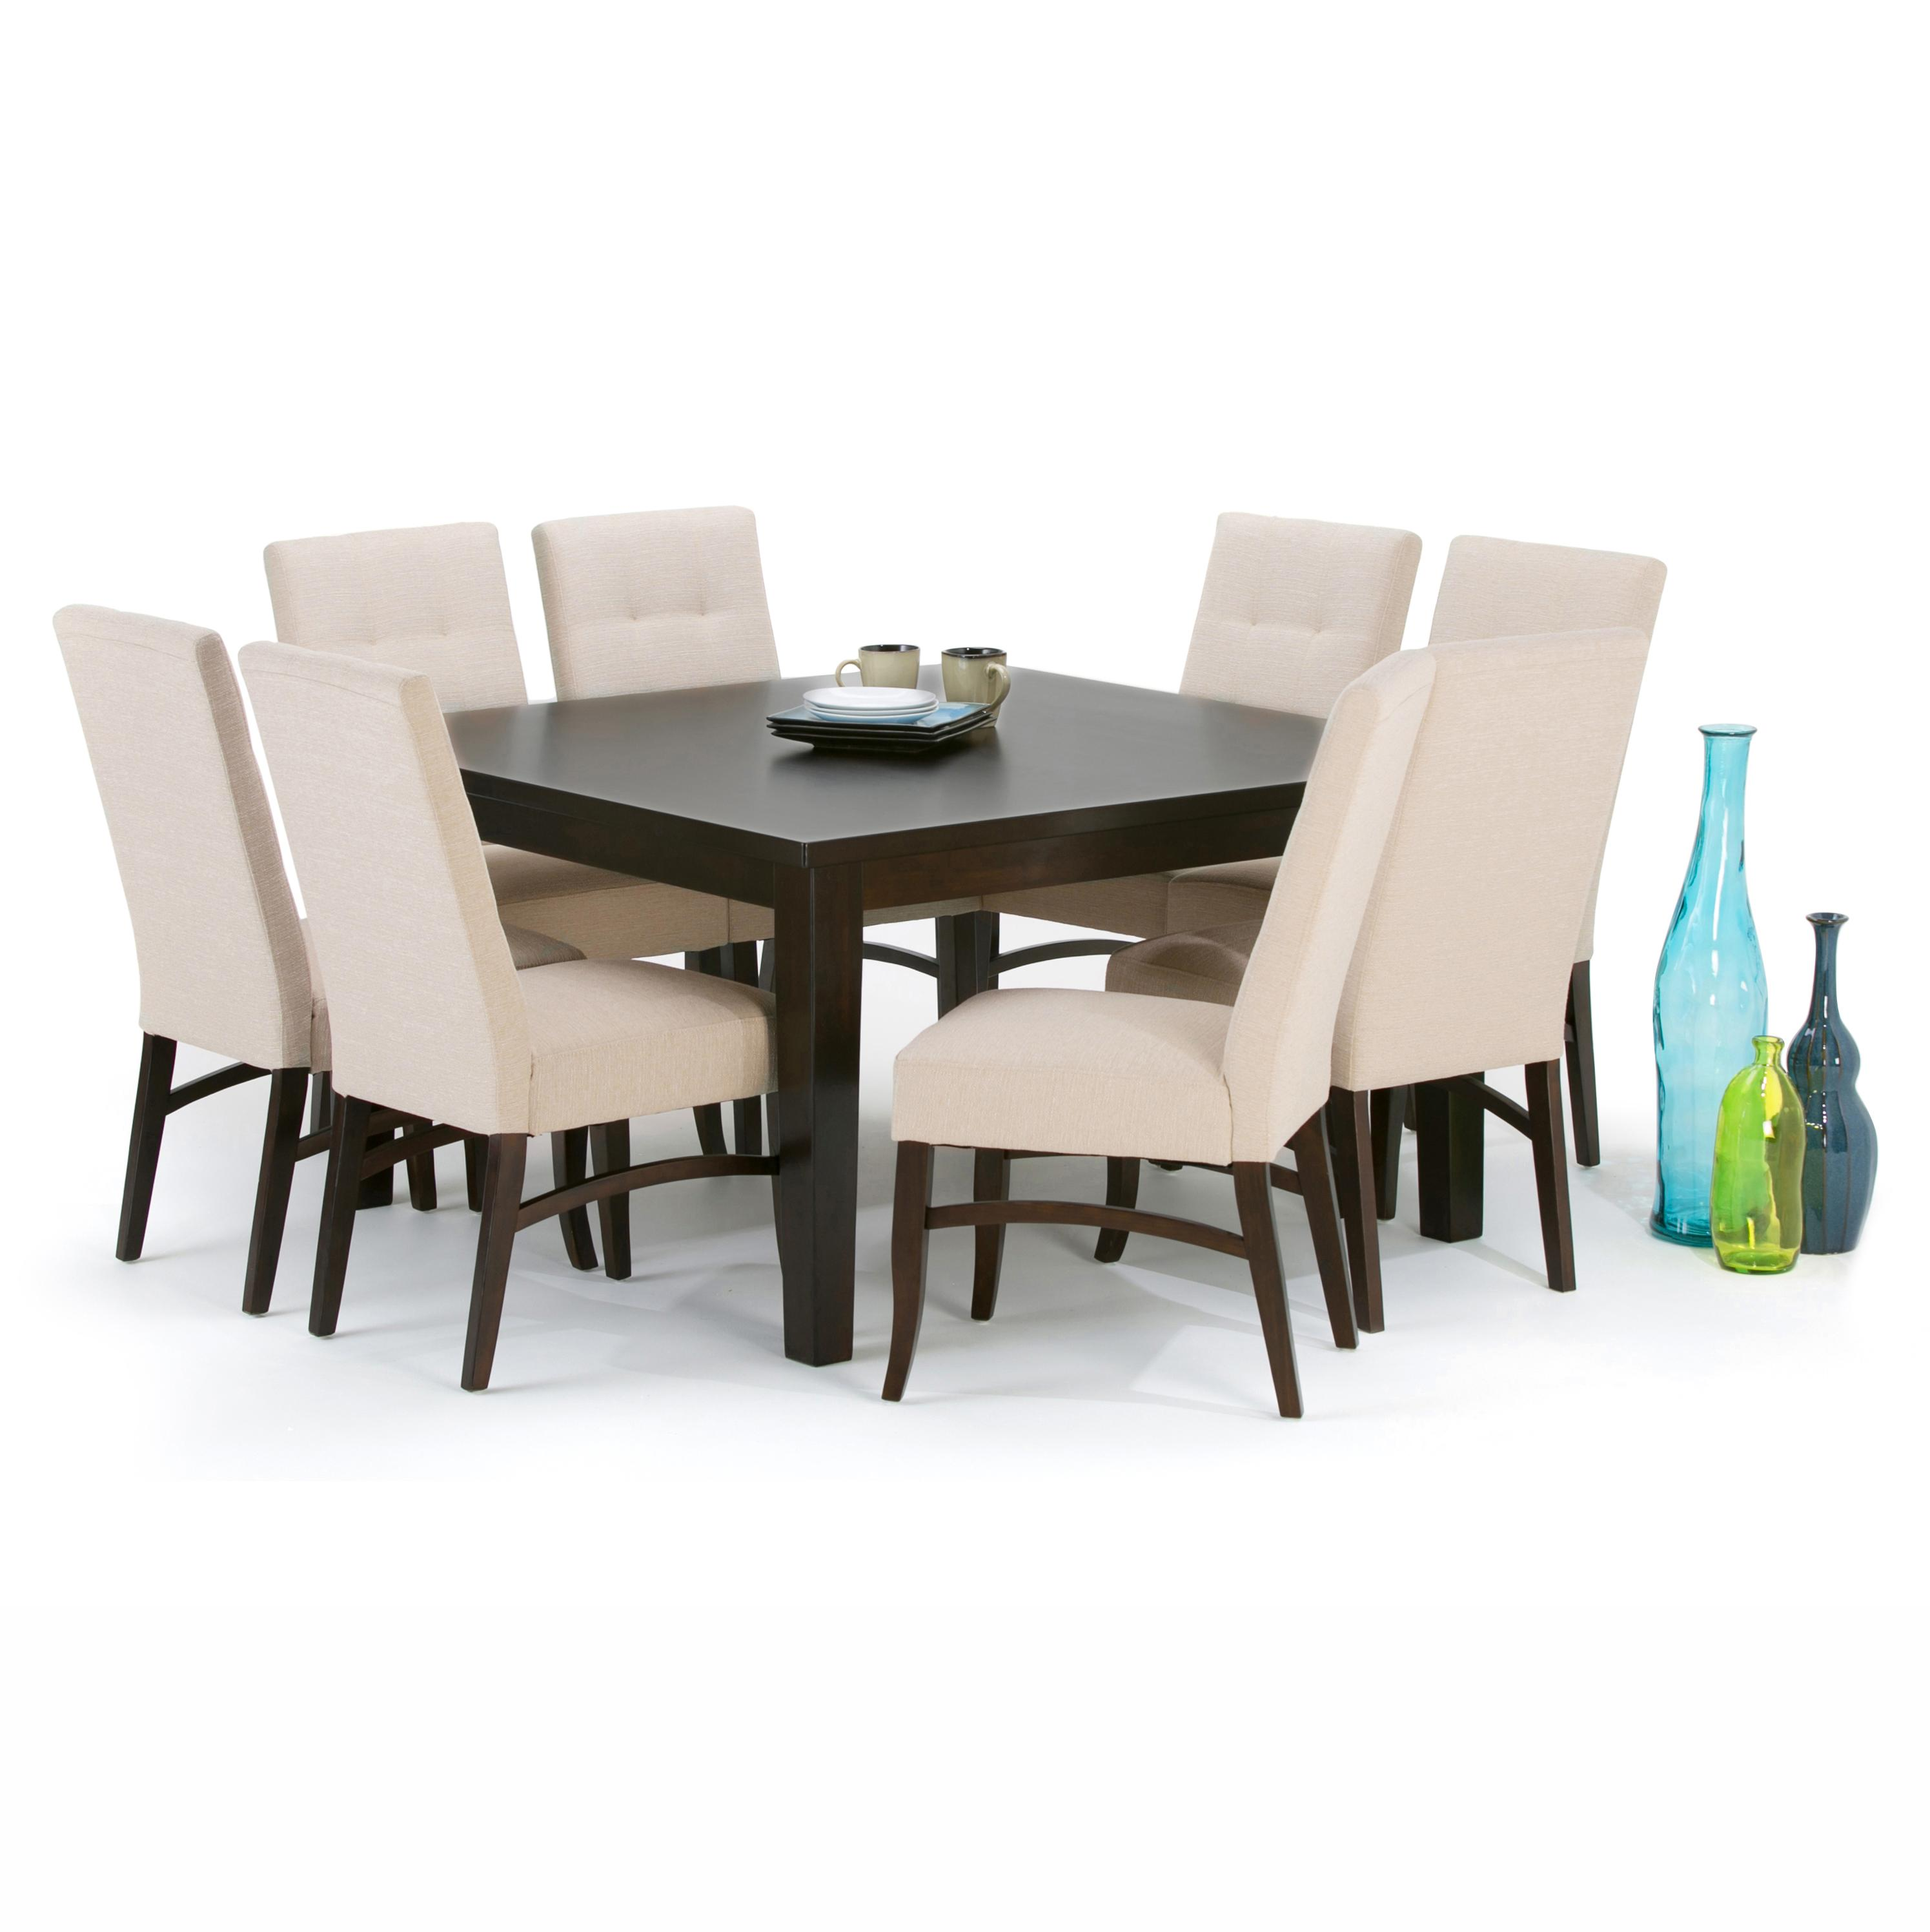 Simpli home eastwood square dining table 54 for Dining room tables on amazon